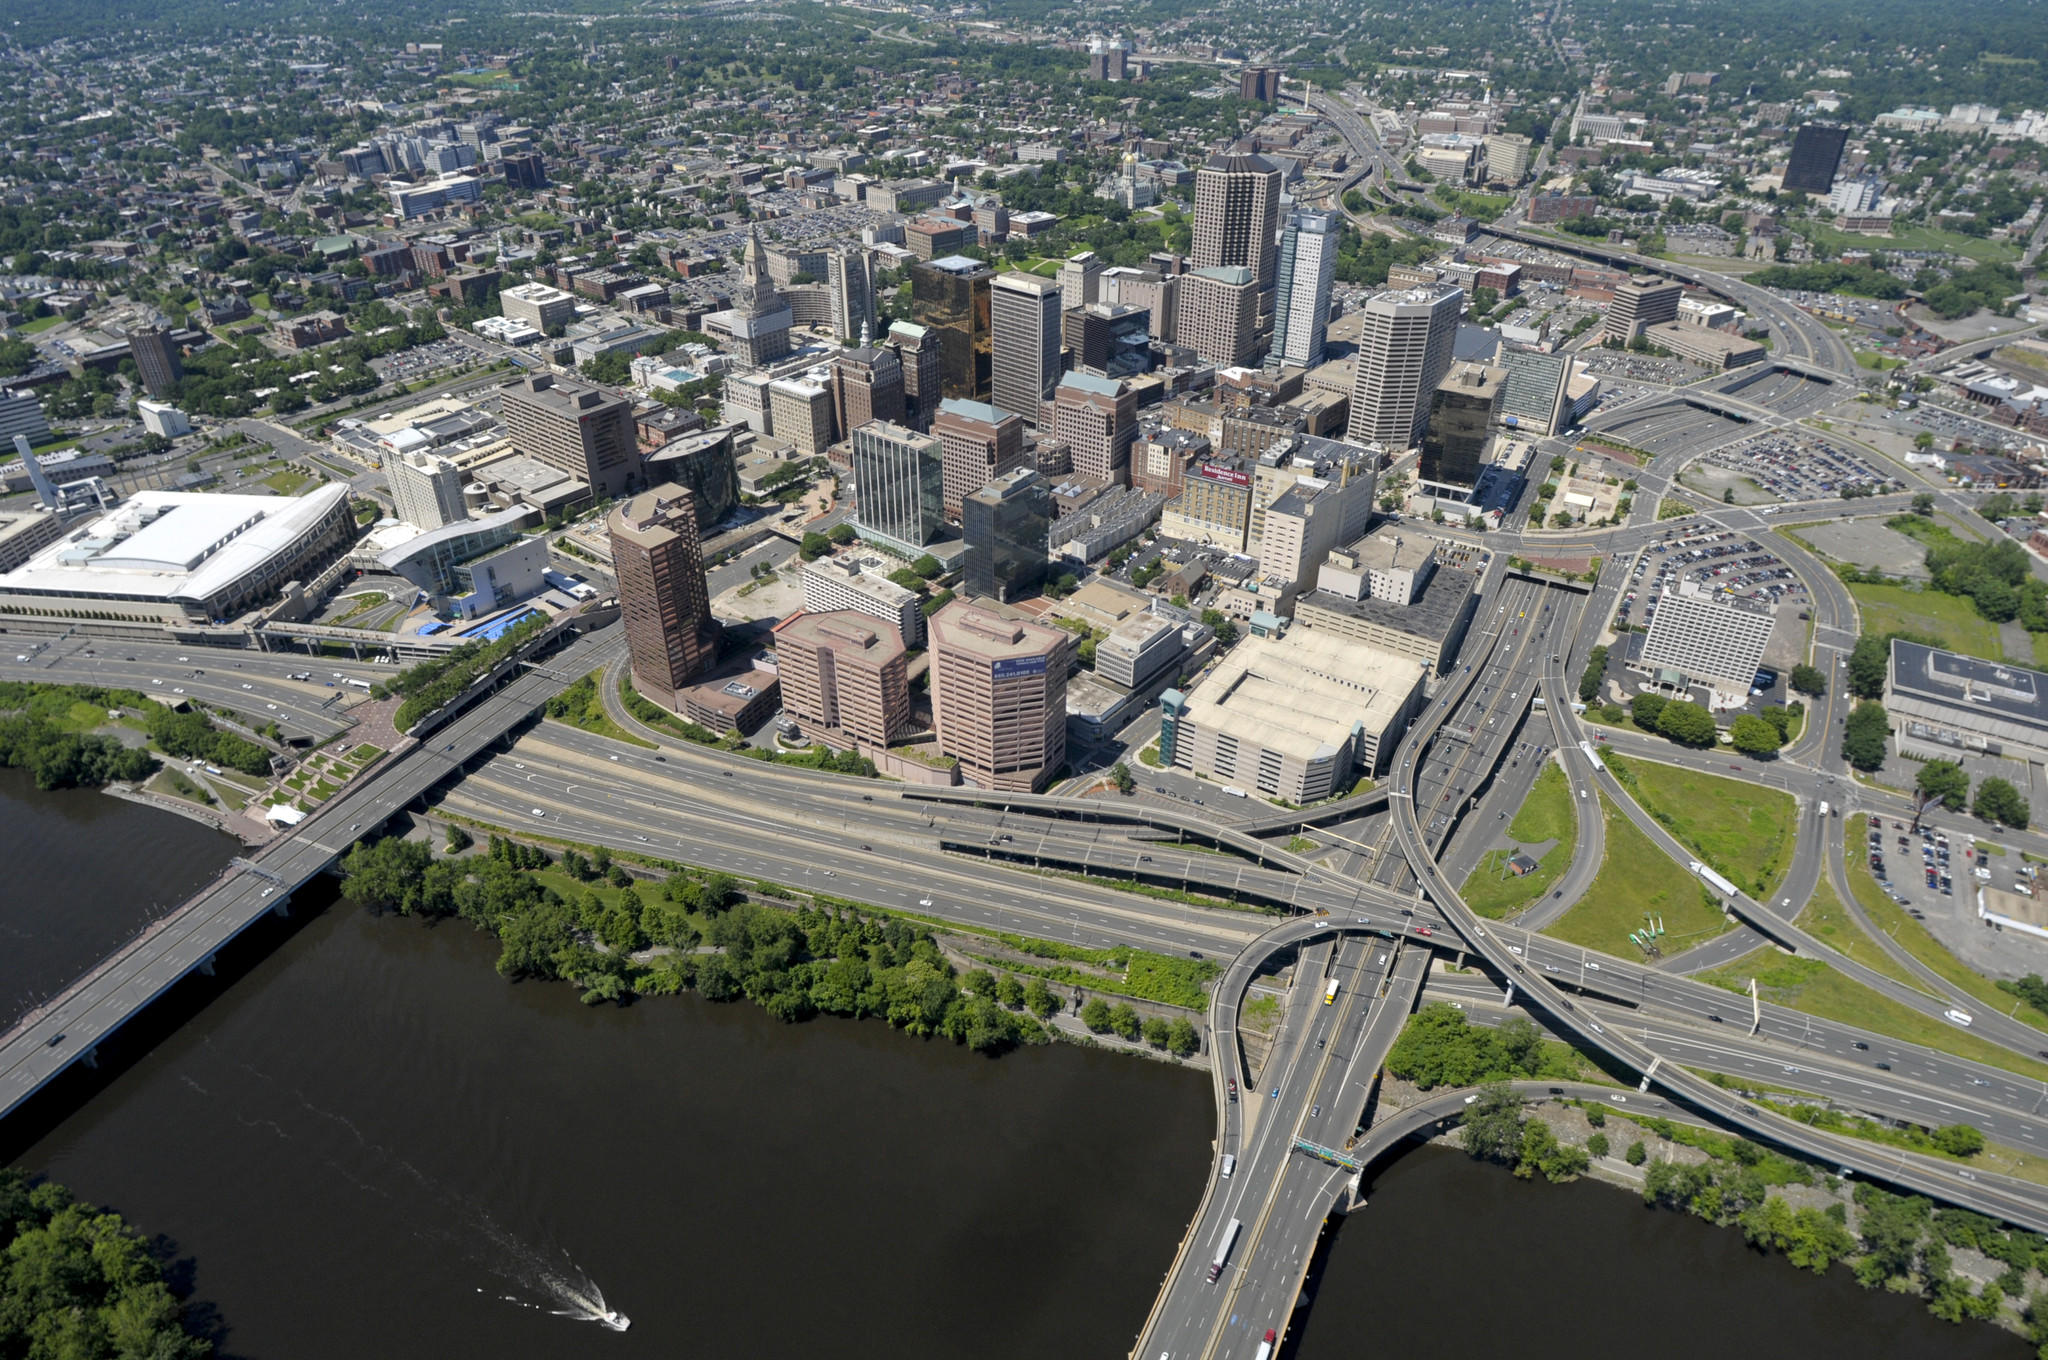 Downtown Hartford is seen from the MetLife blimp on June 20, 2013.